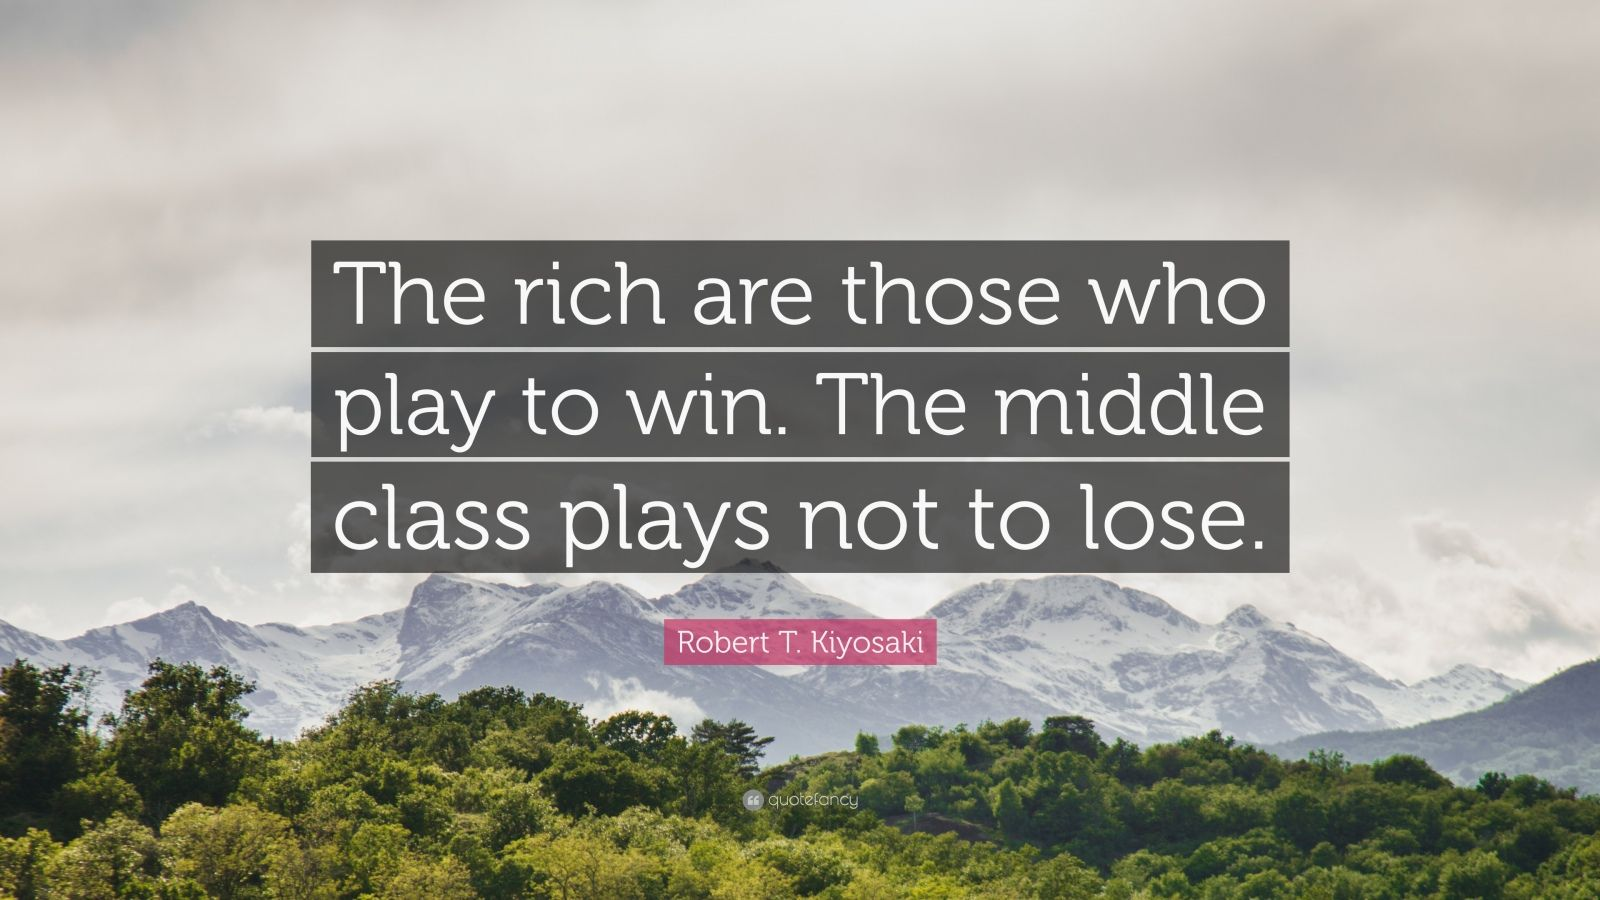 """Robert T. Kiyosaki Quote: """"The rich are those who play to win. The middle class plays not to lose."""""""